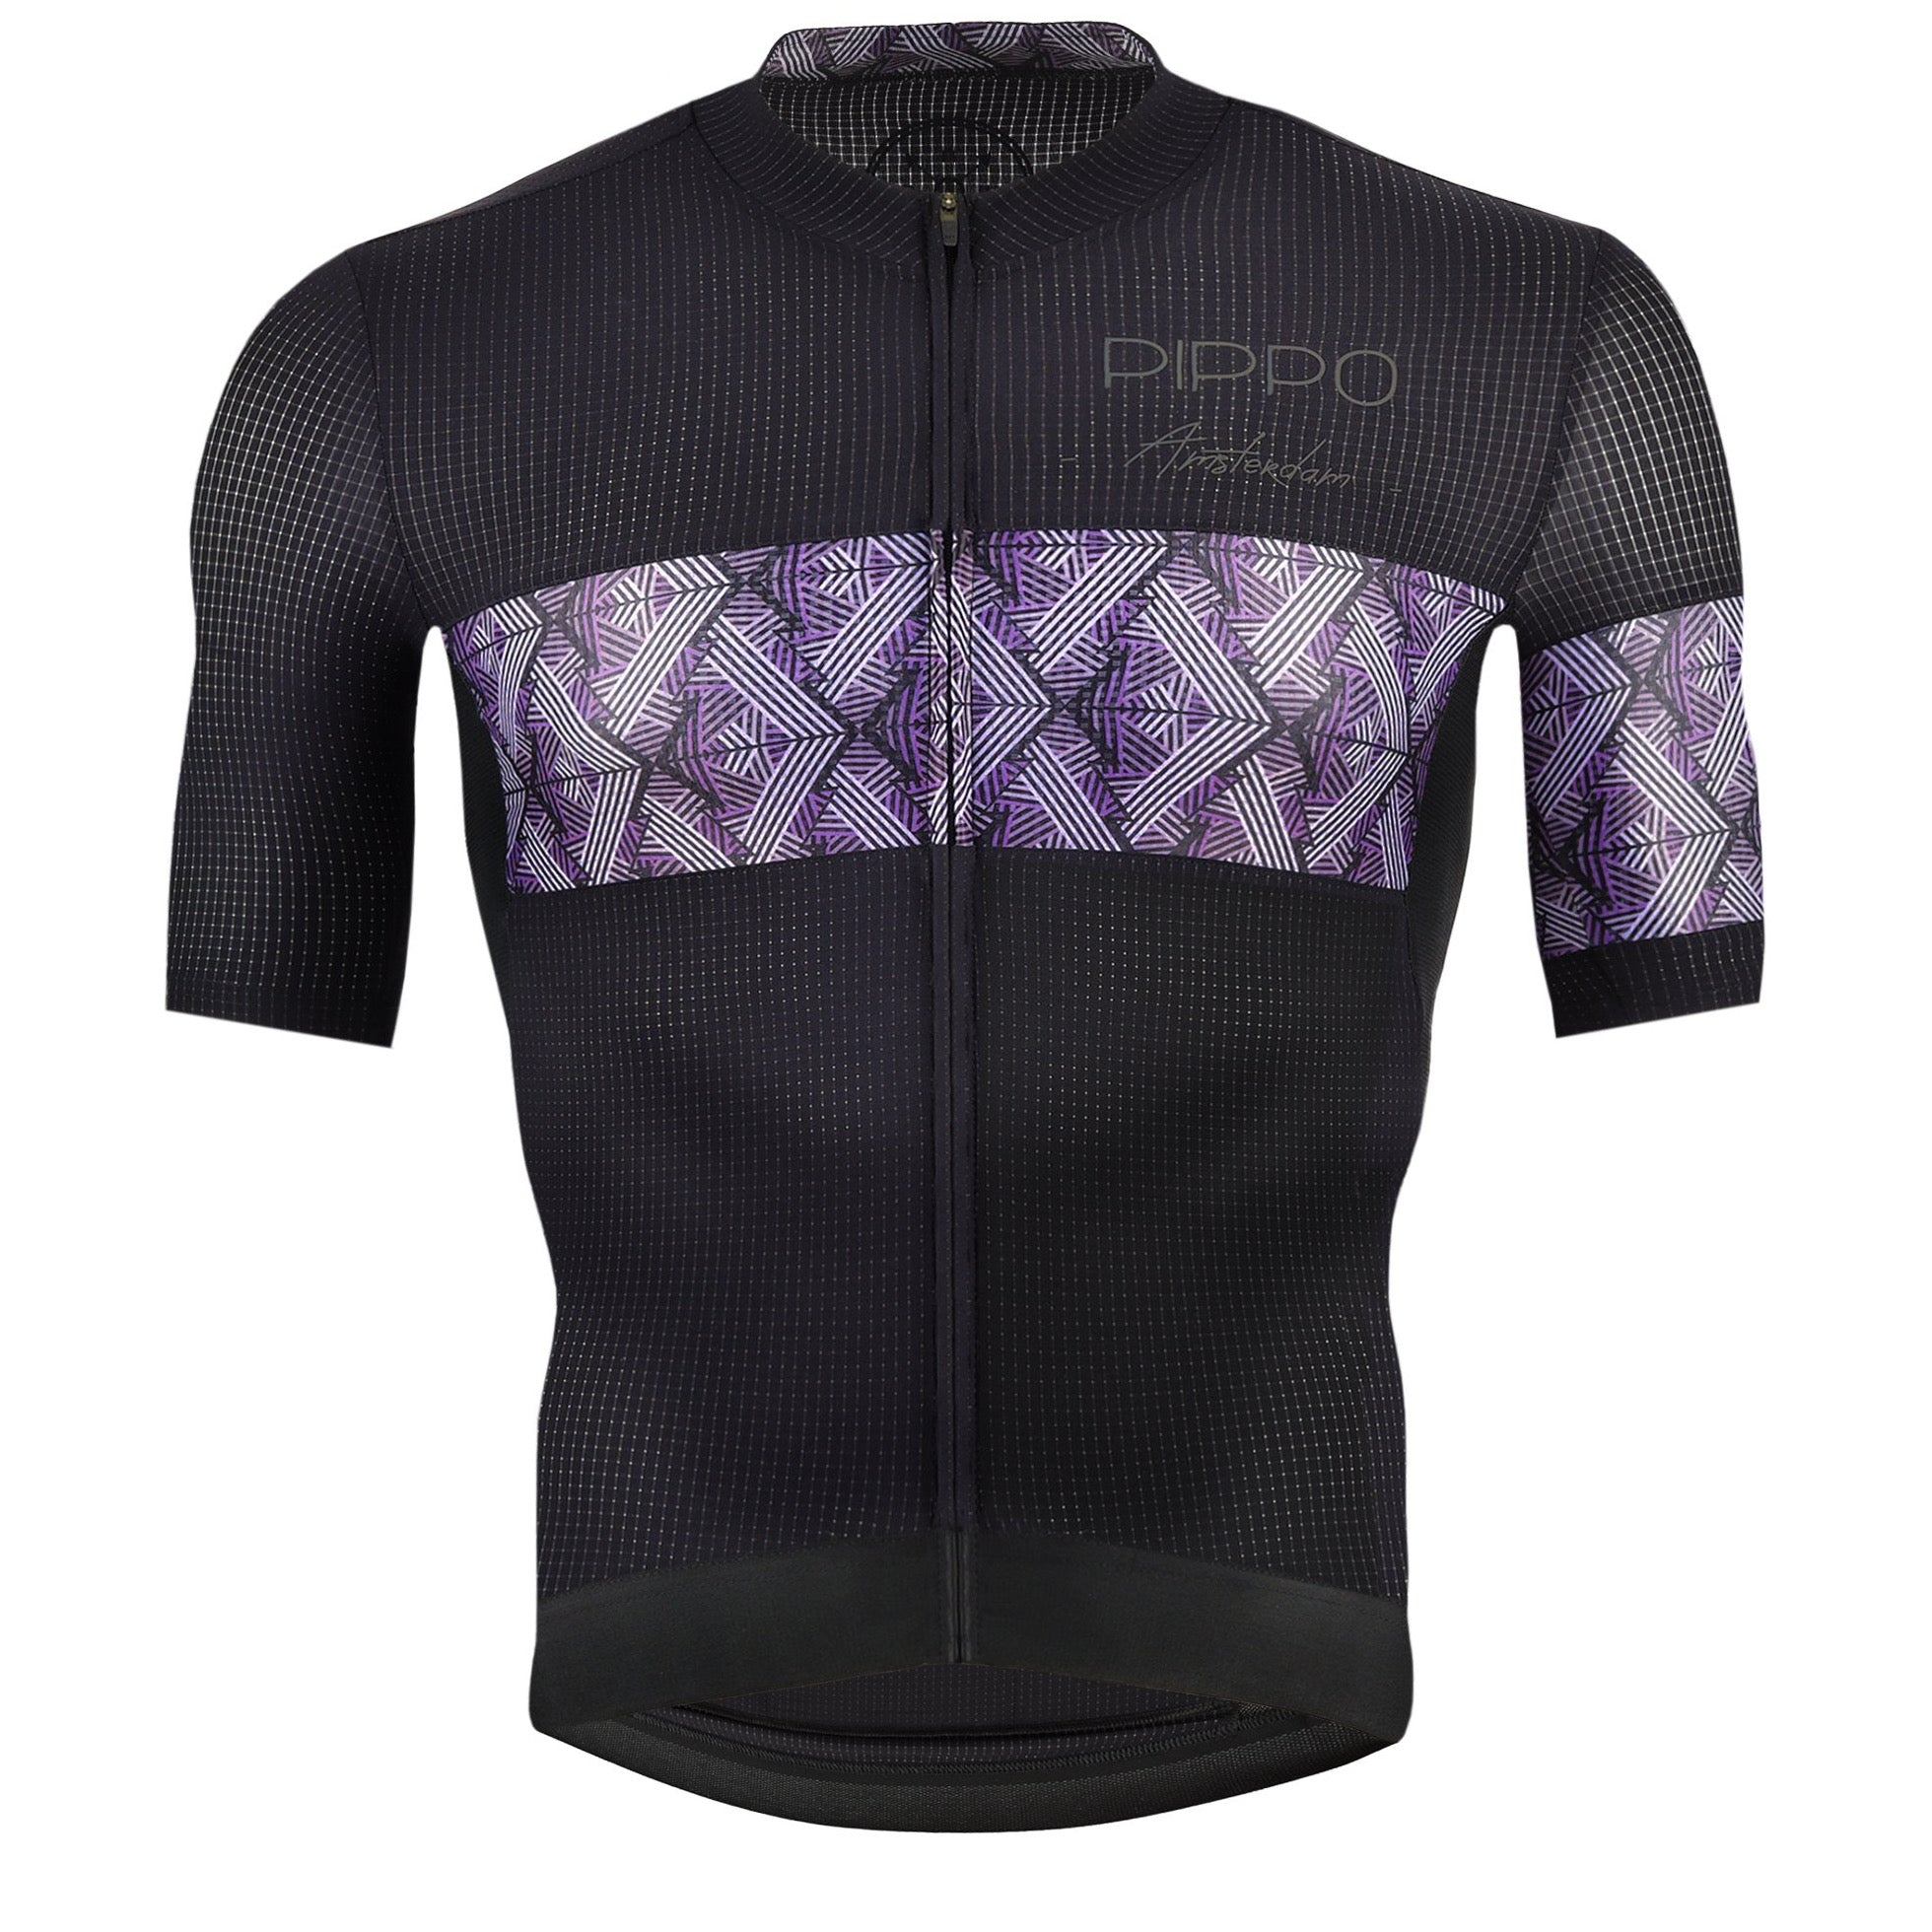 PIPPO Cycling Jersey Women – Alpe d'Huez